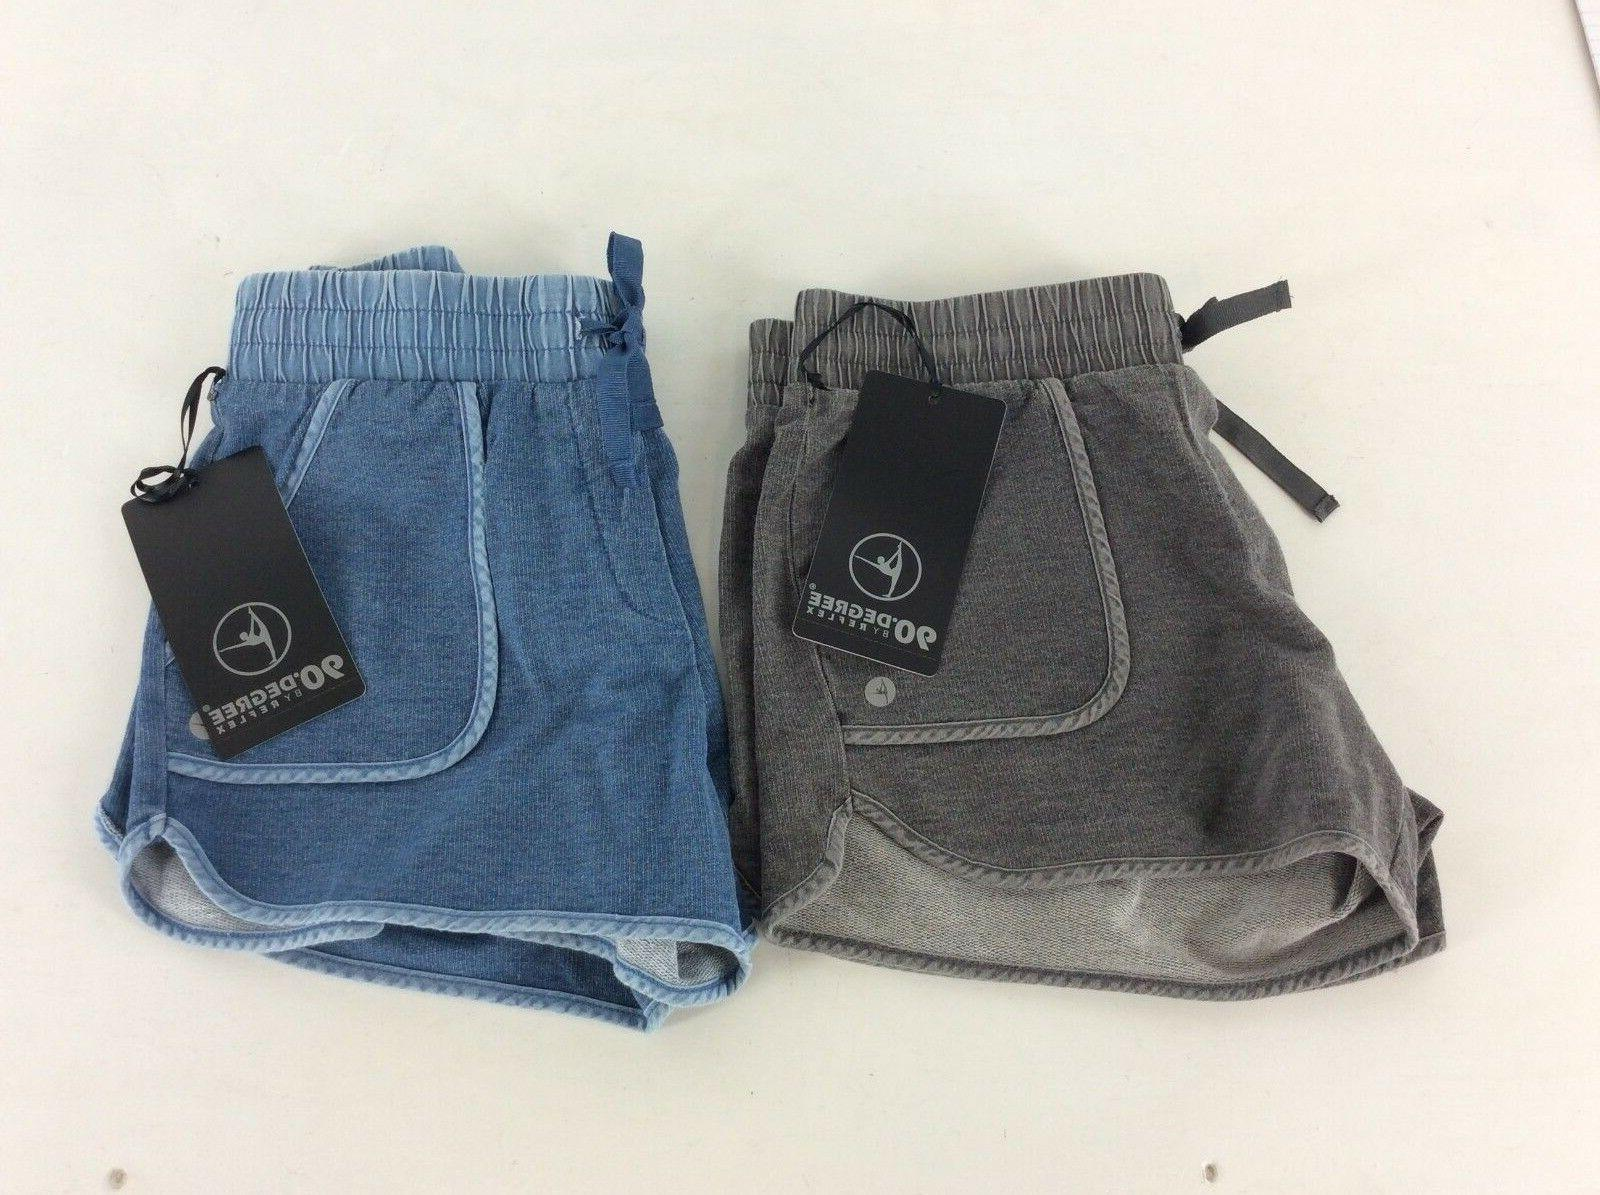 90 DEGREE by Reflex -- Ladies Short Comfy Shorts - MSRP $48